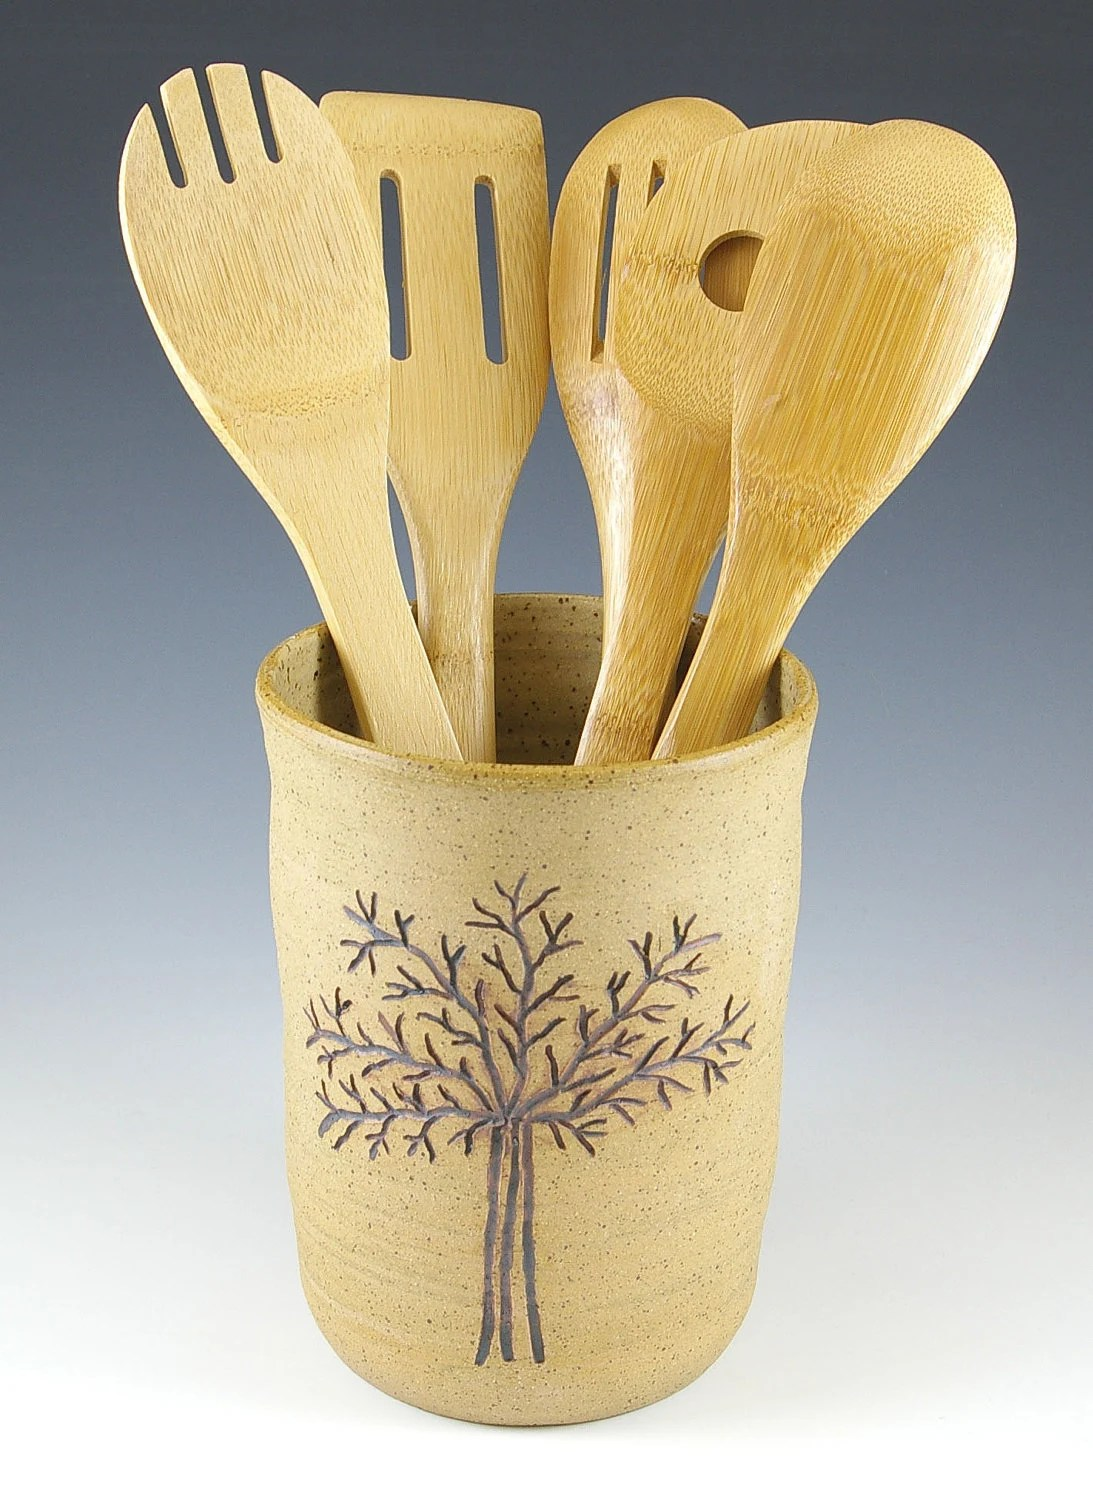 Rustic Utensil Crock Handmade Ceramic Utensil Holder Crock Spoon Holder Tree